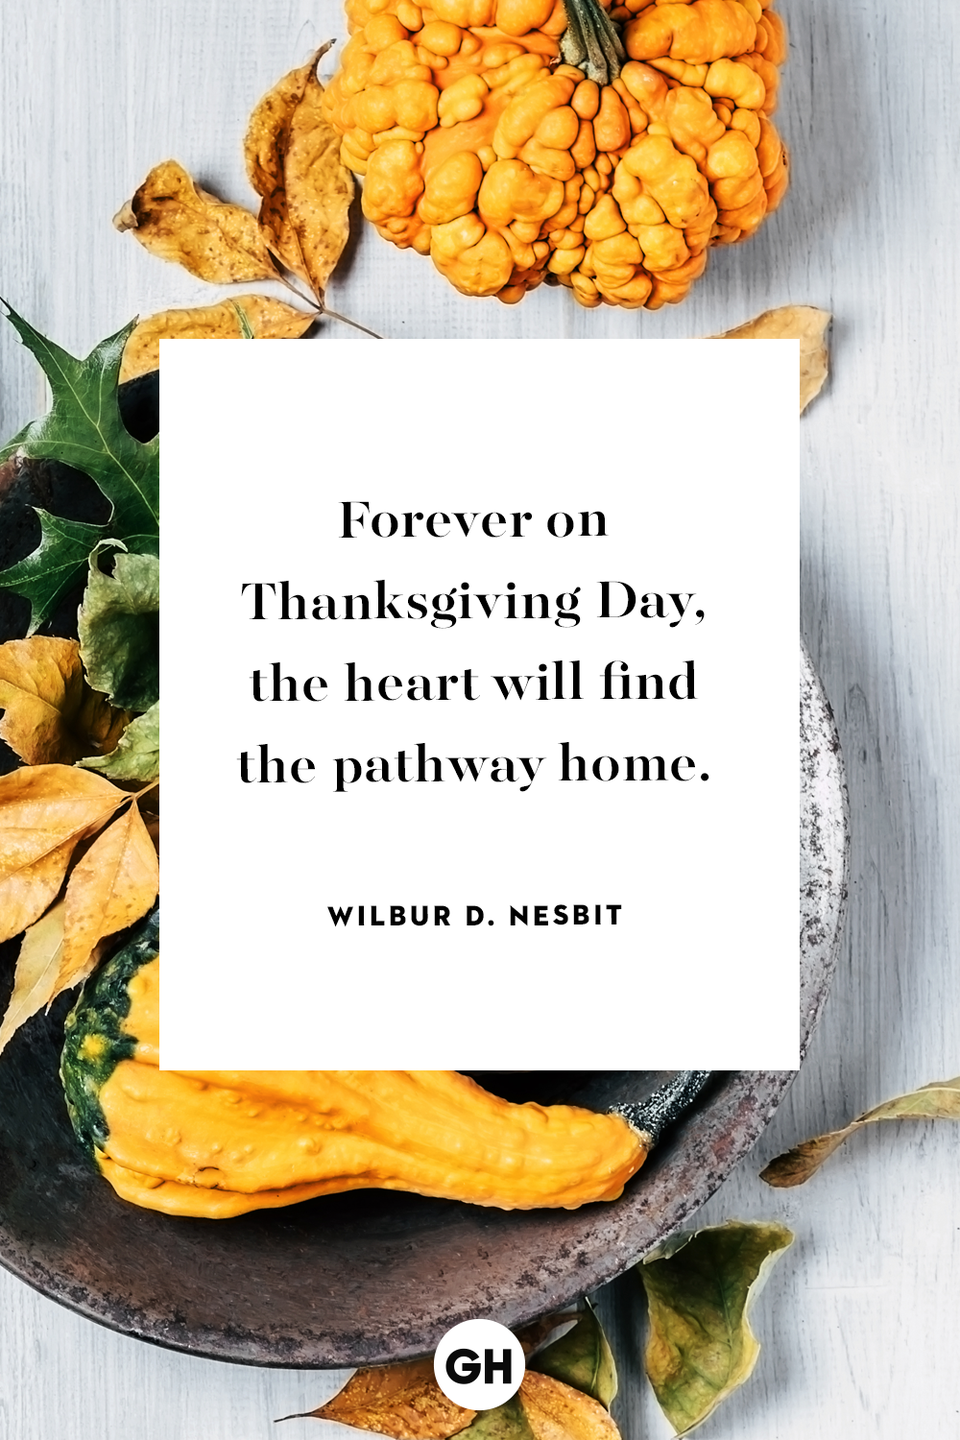 """<p>Forever on <a href=""""https://www.goodhousekeeping.com/holidays/thanksgiving-ideas/"""" rel=""""nofollow noopener"""" target=""""_blank"""" data-ylk=""""slk:Thanksgiving Day"""" class=""""link rapid-noclick-resp"""">Thanksgiving Day</a>, the heart will find the pathway home.</p>"""